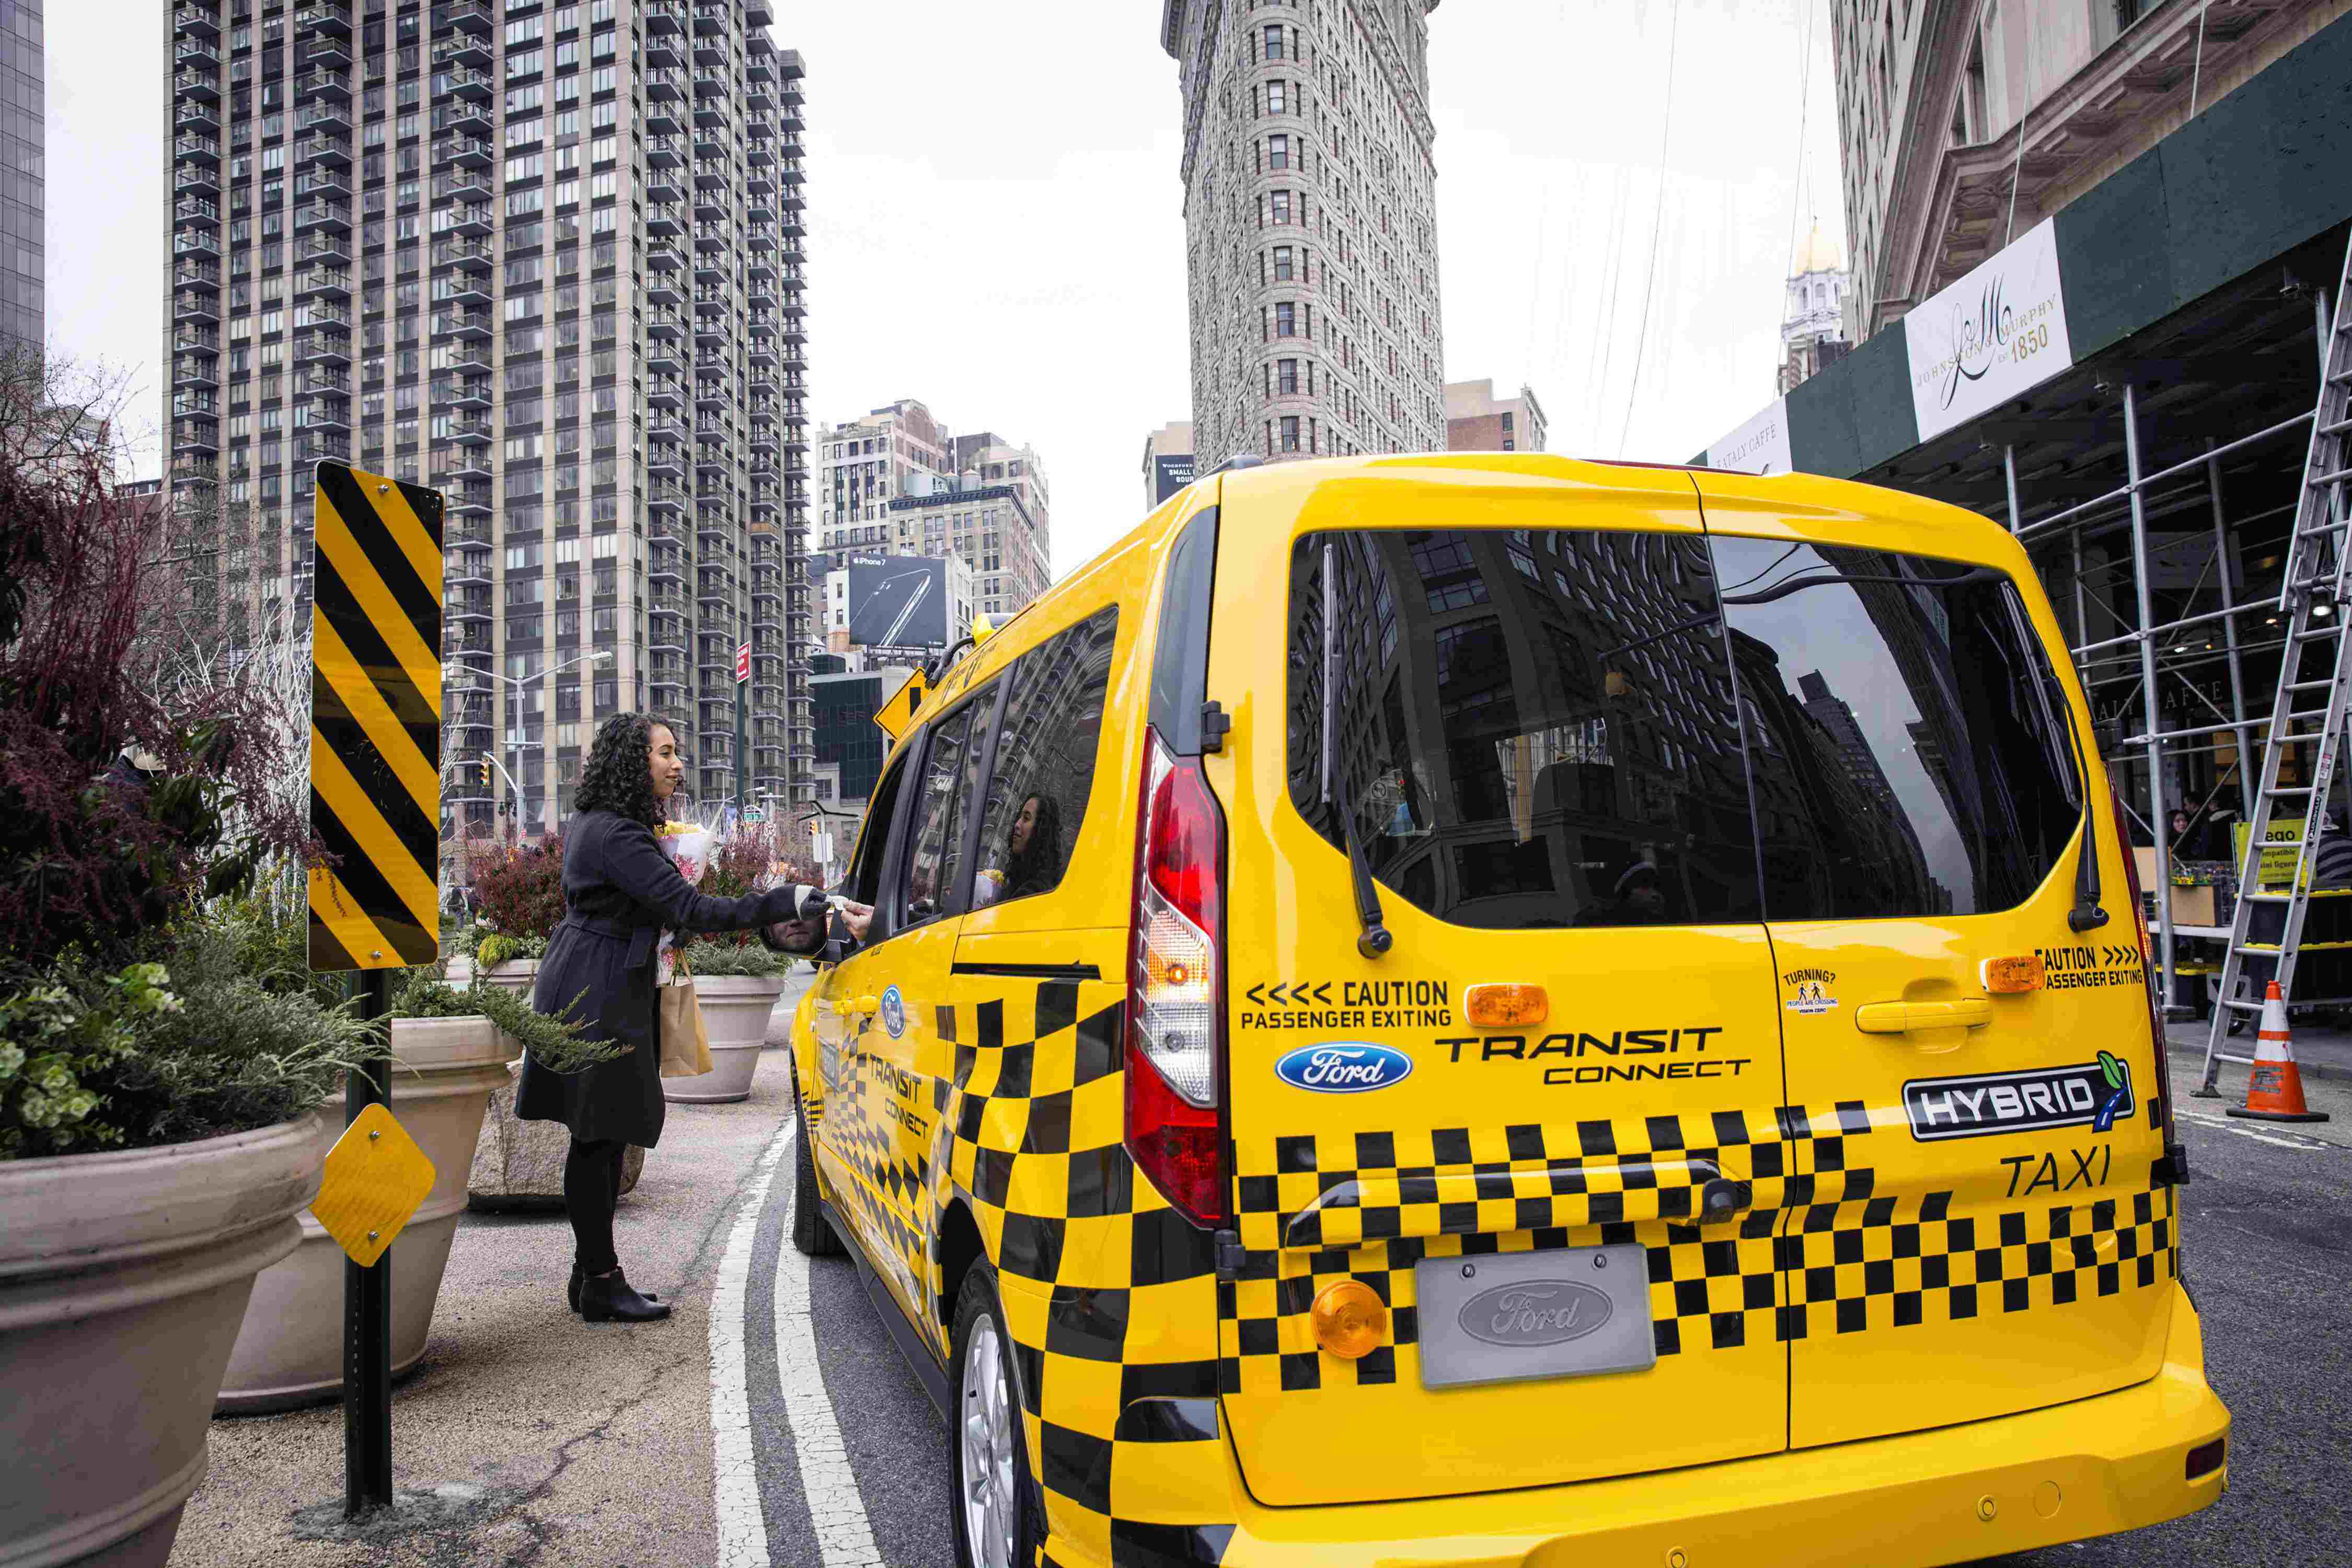 Ford announced today that prototype hybrid Transit Connect taxis will be making their way through U.S. cities.